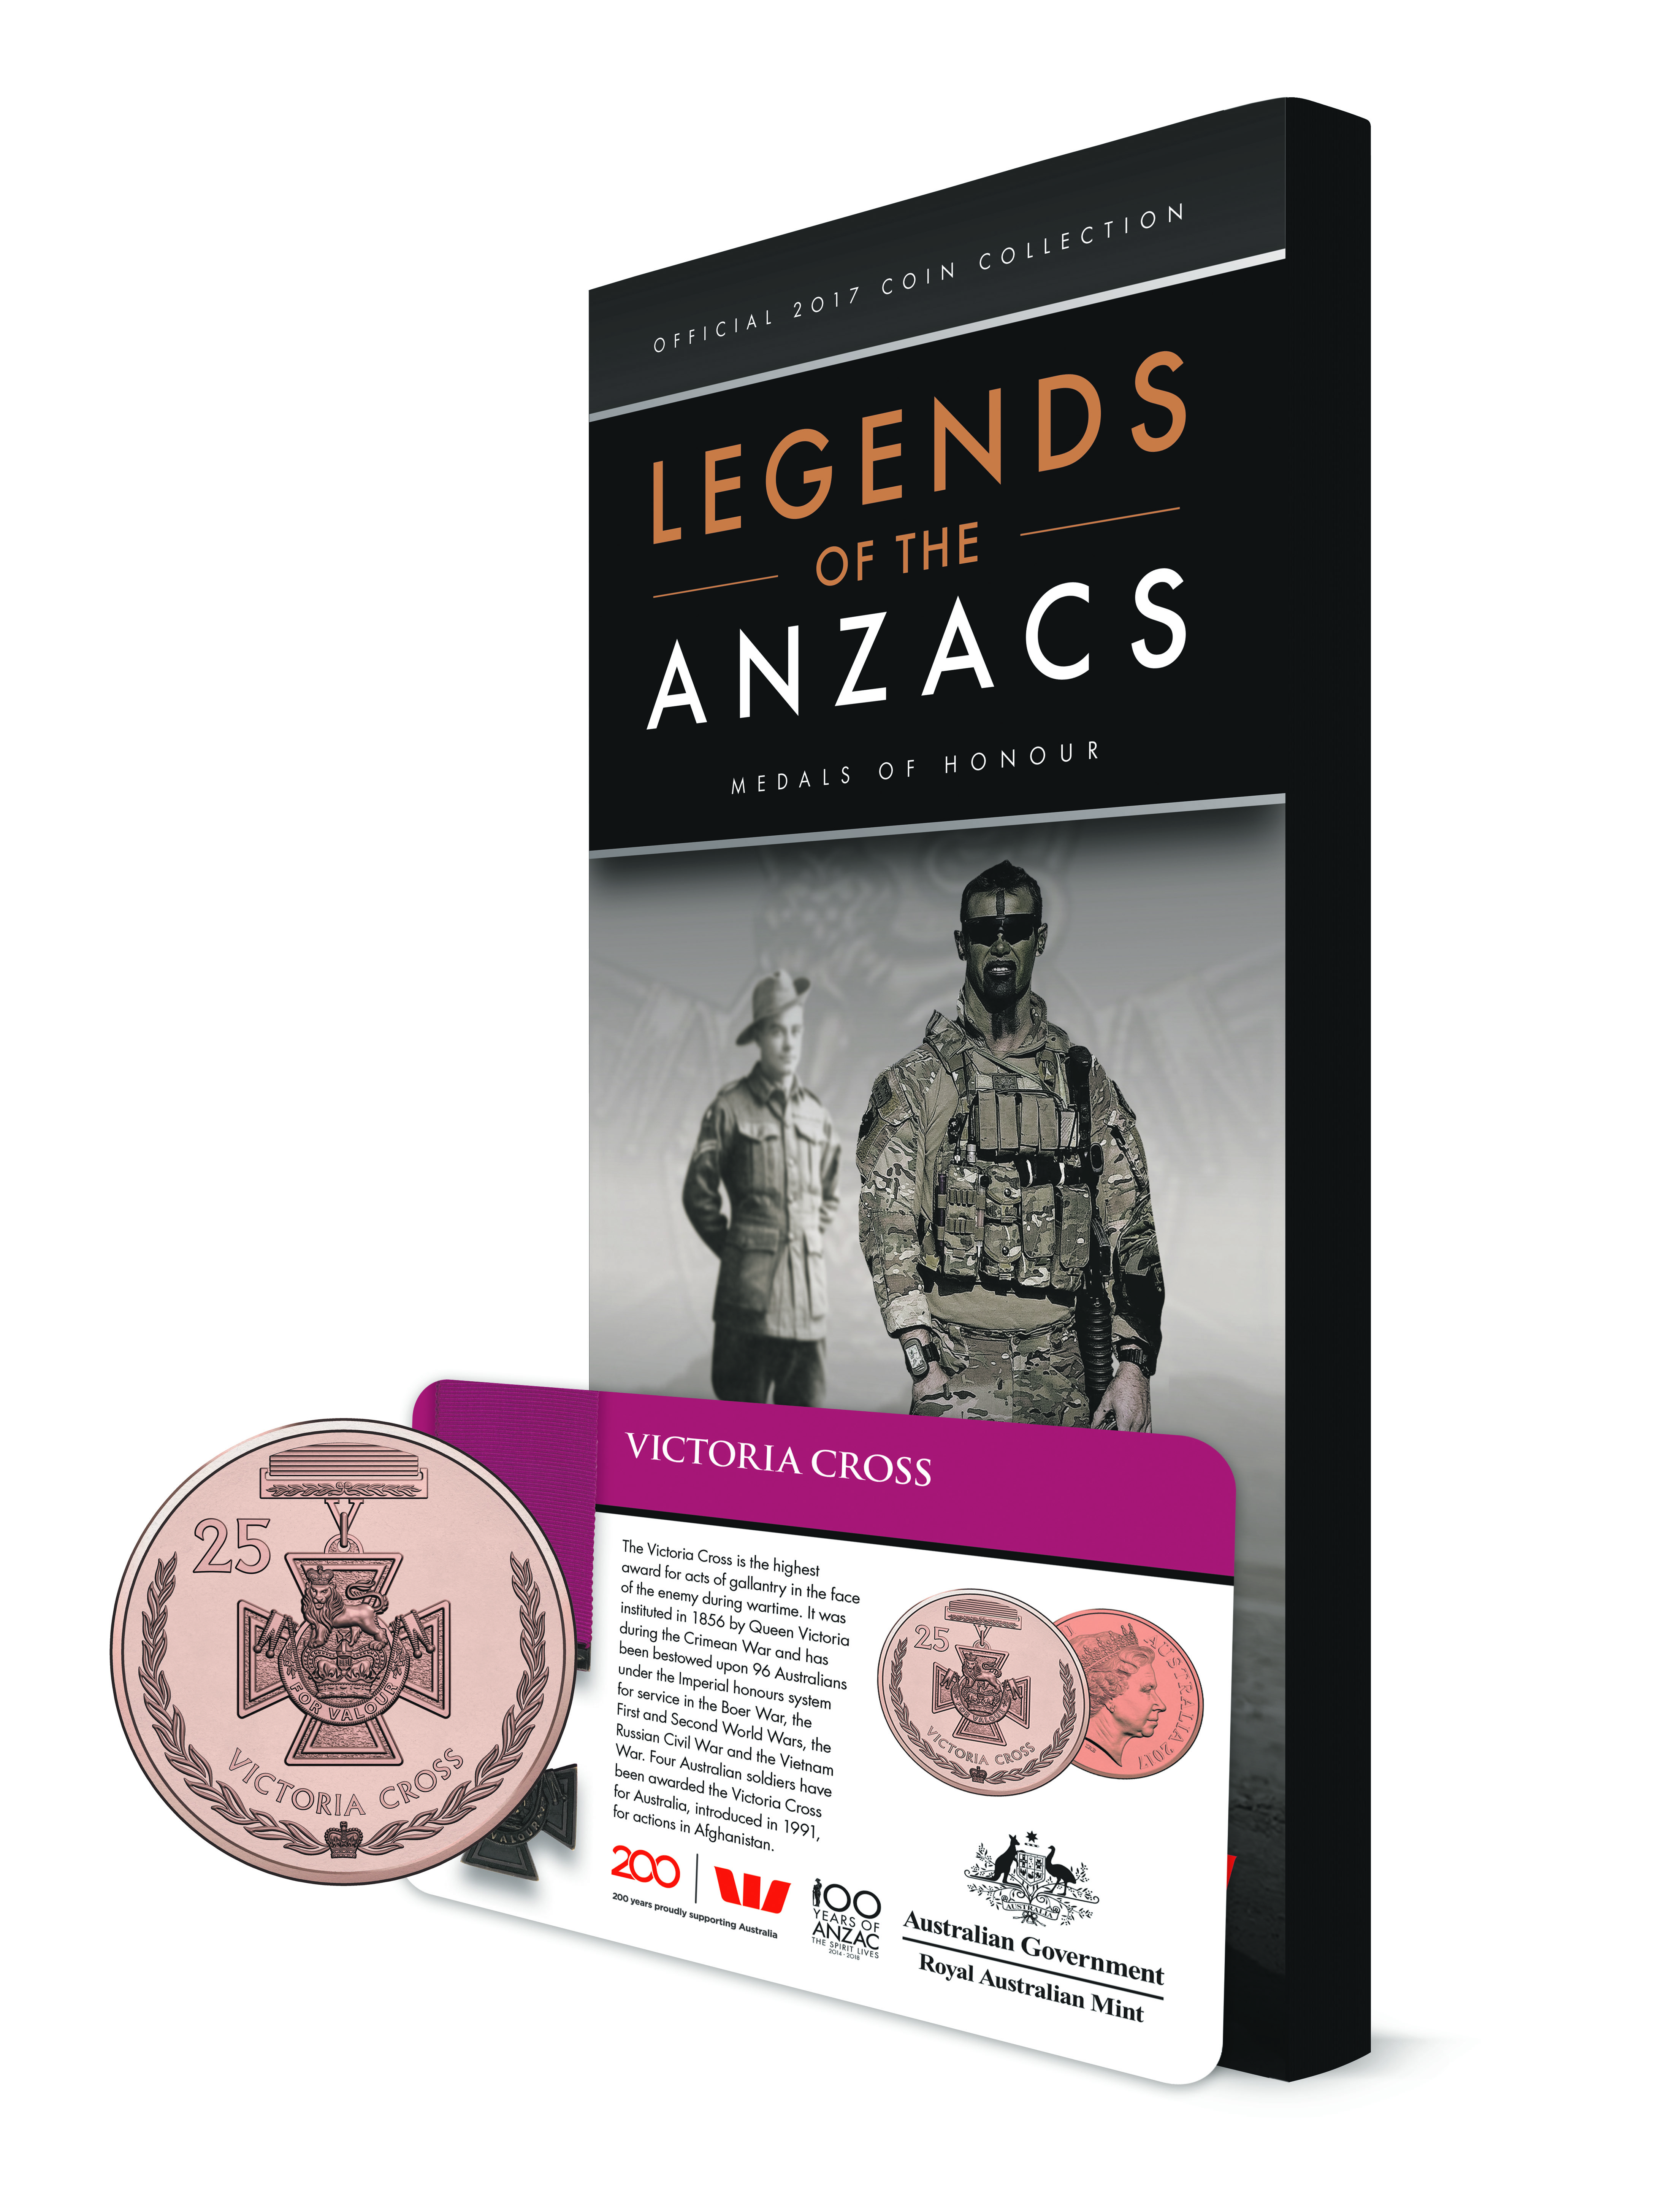 Discover the stories behind the medals - Keeping our military legends alive